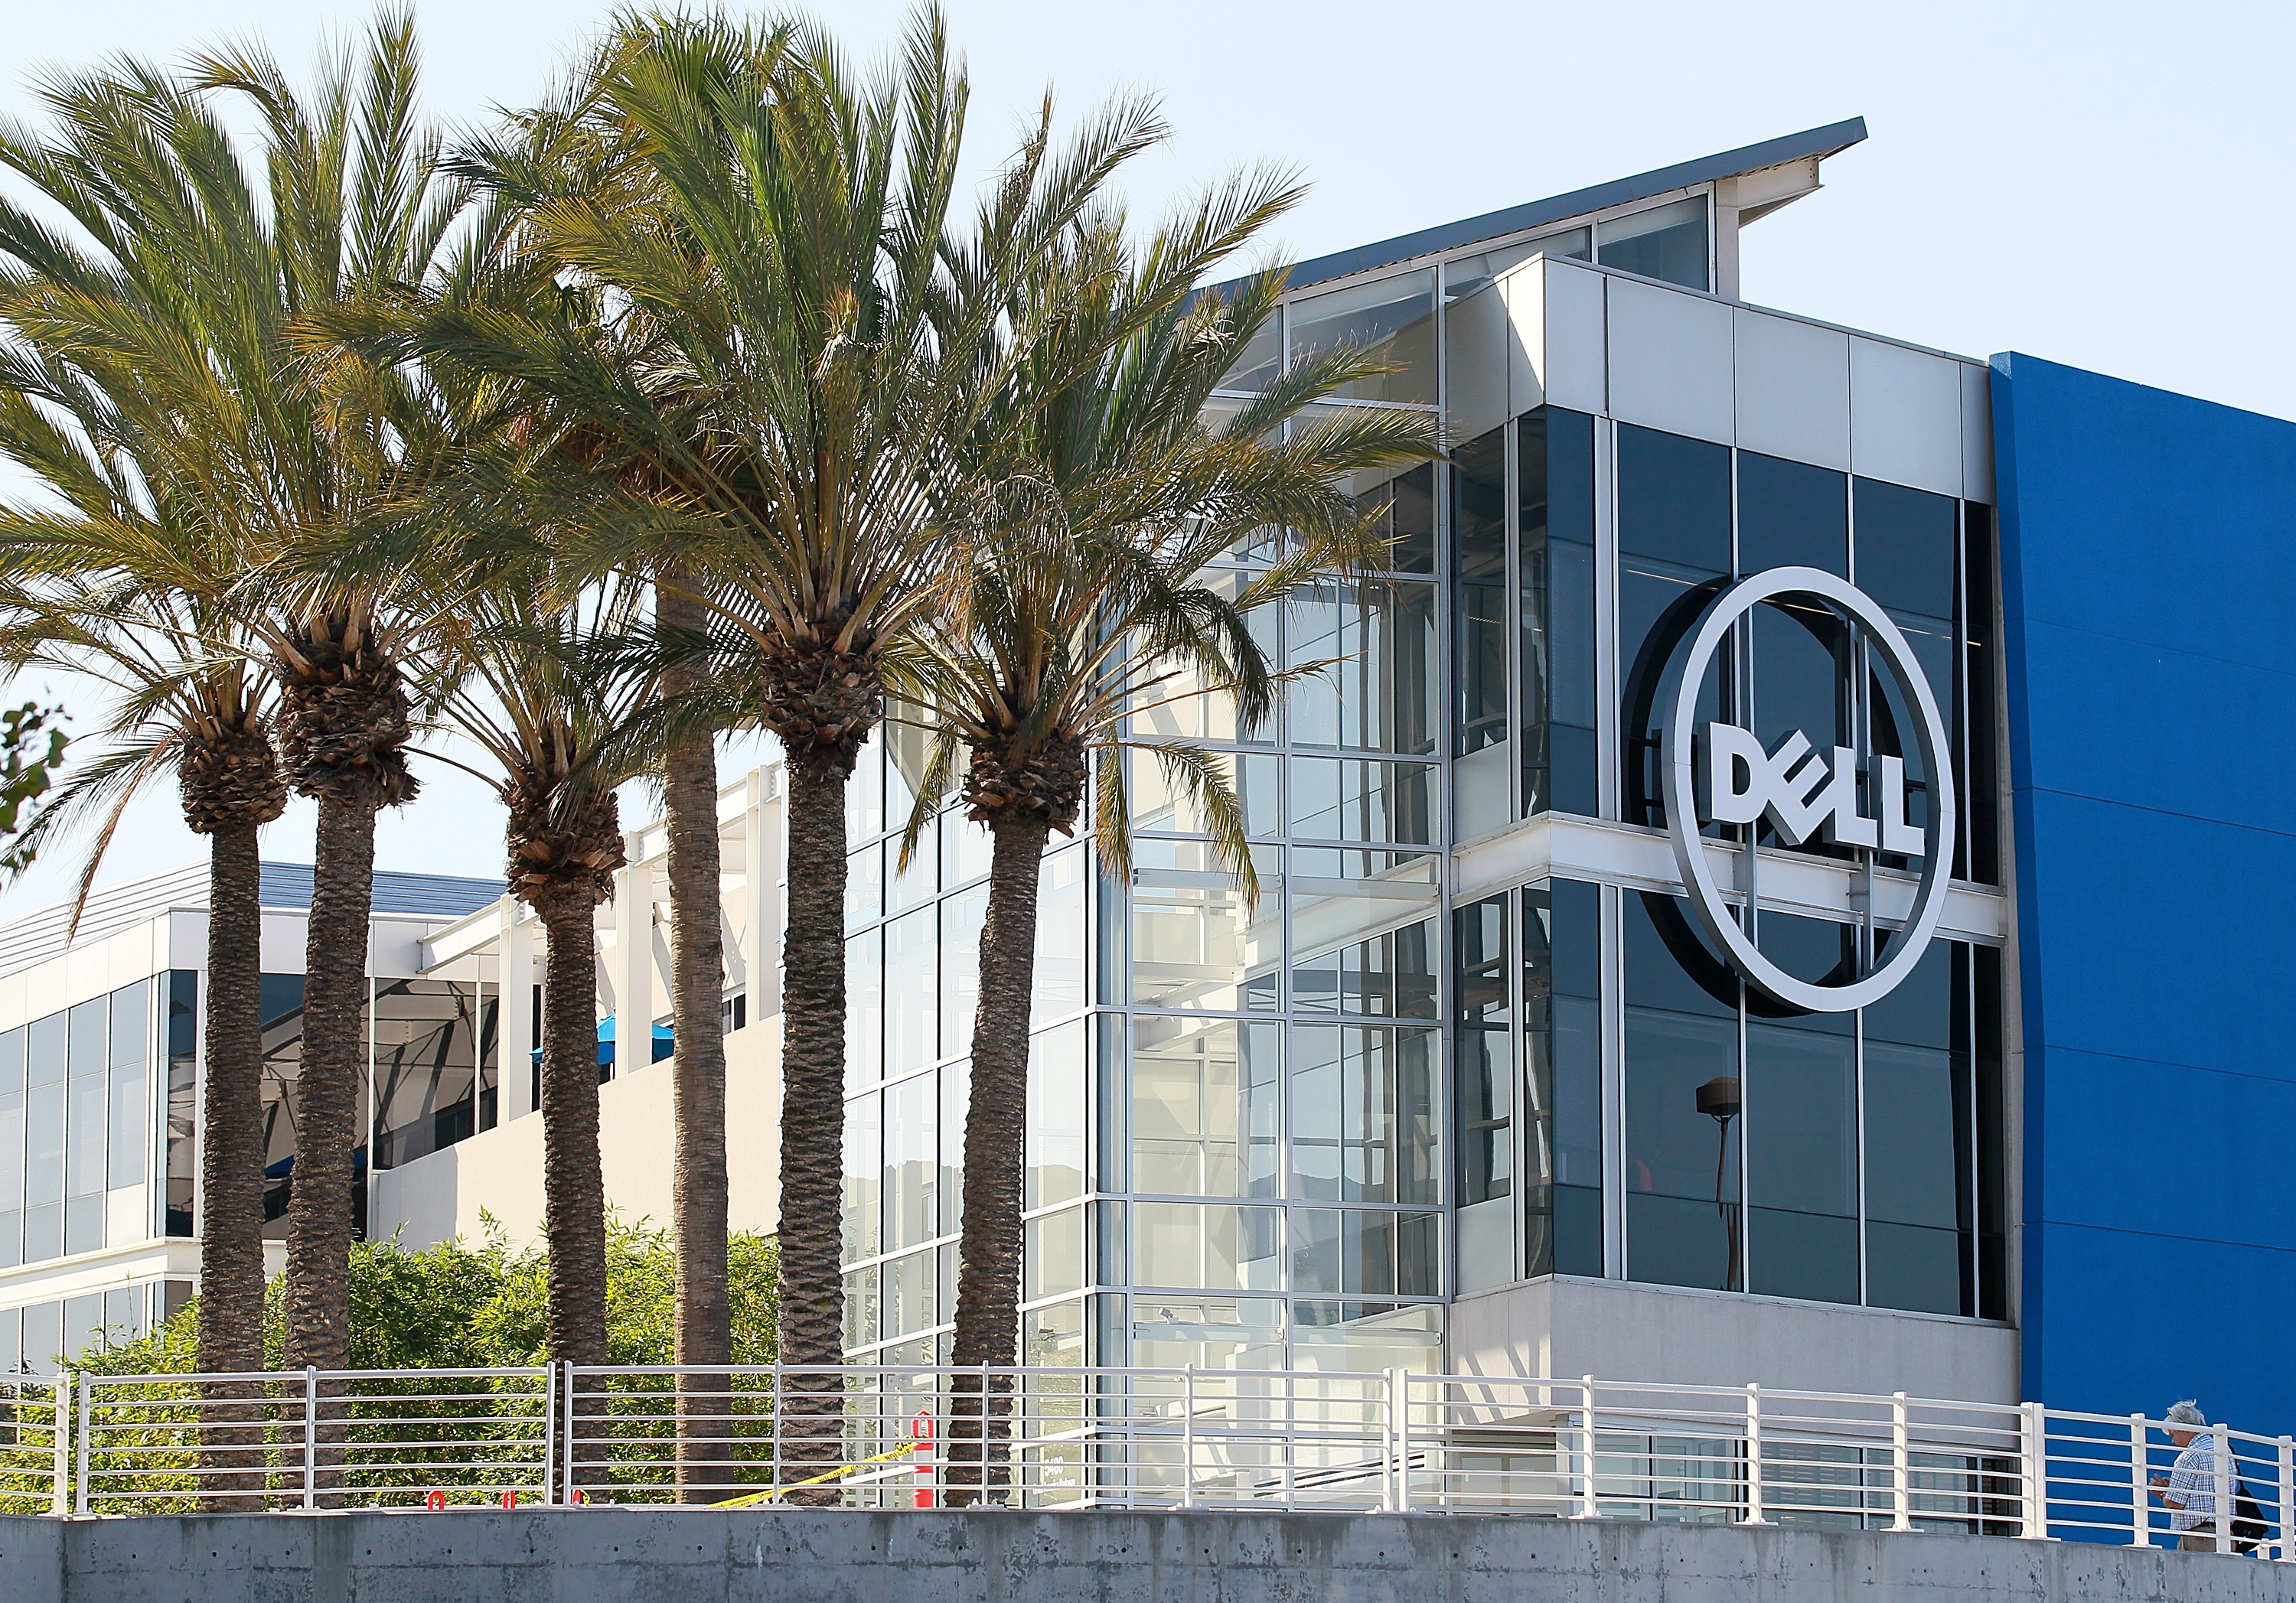 Dell On Wearable Computers: 'We're Exploring Ideas In That Space'